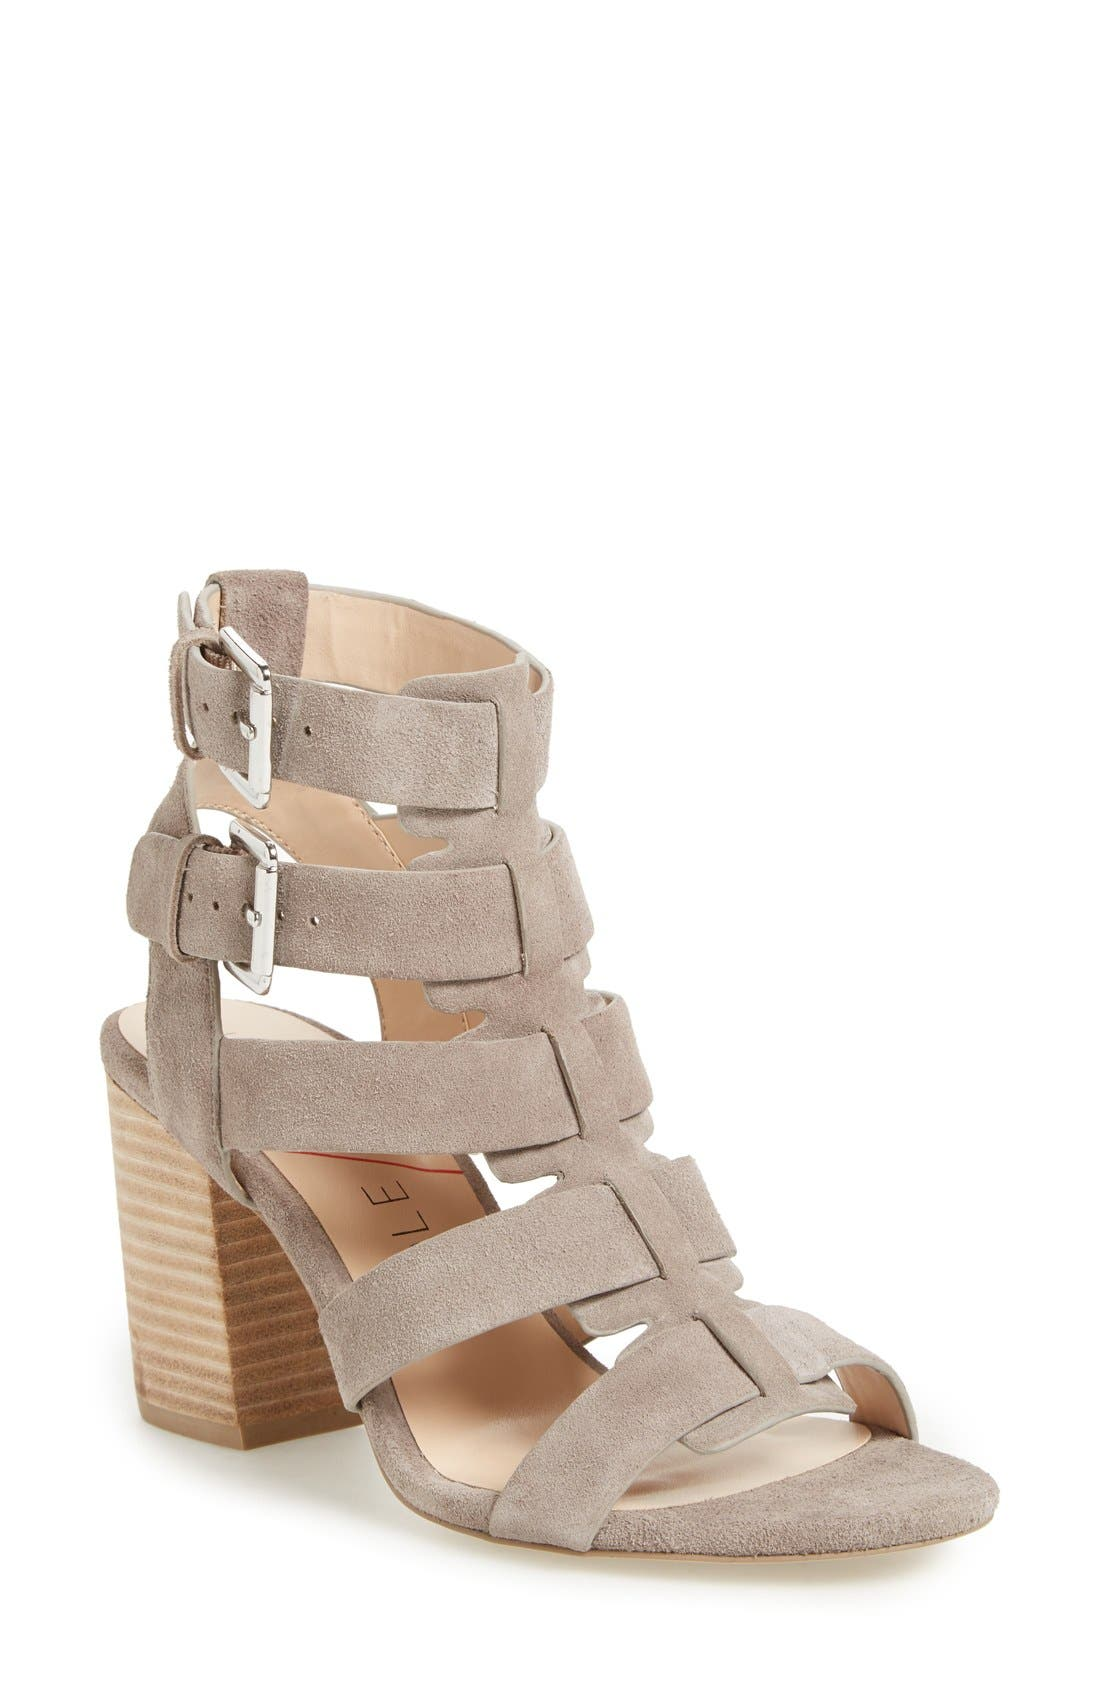 Main Image - Sole Society 'Rhea' Sandal (Women)